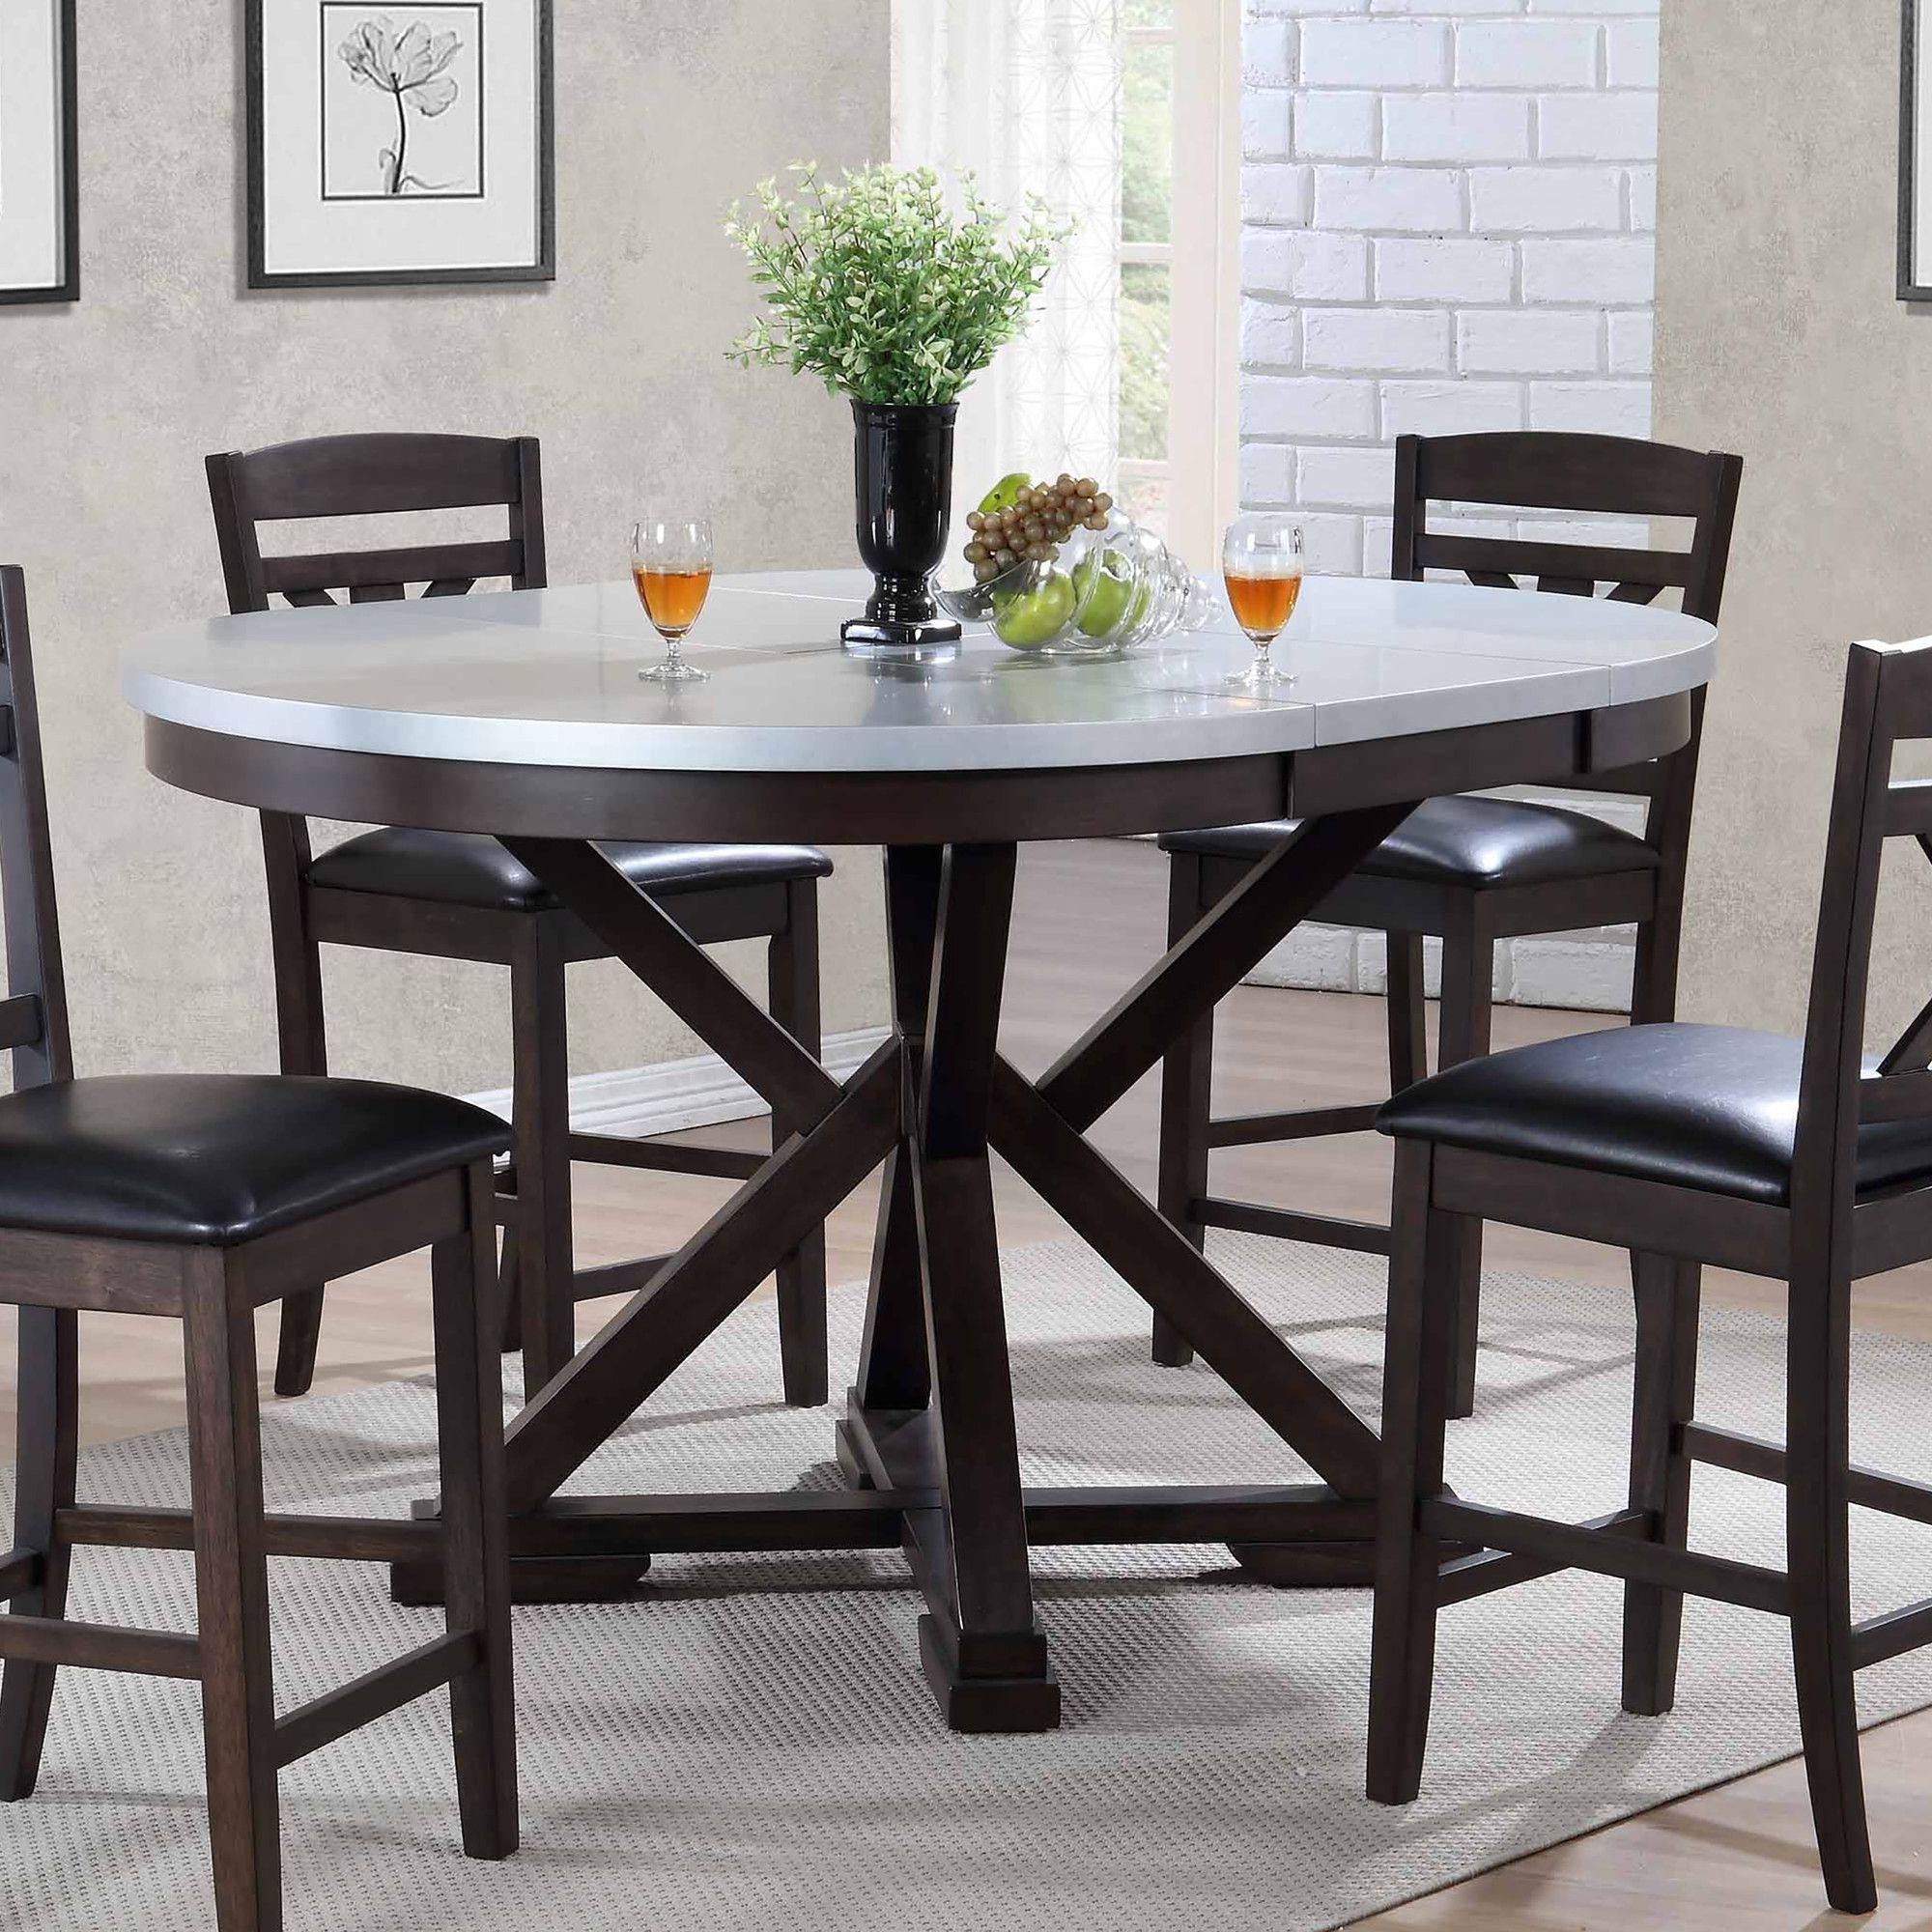 Hamilton Uv Counter Height Dining Table (Gallery 10 of 25)